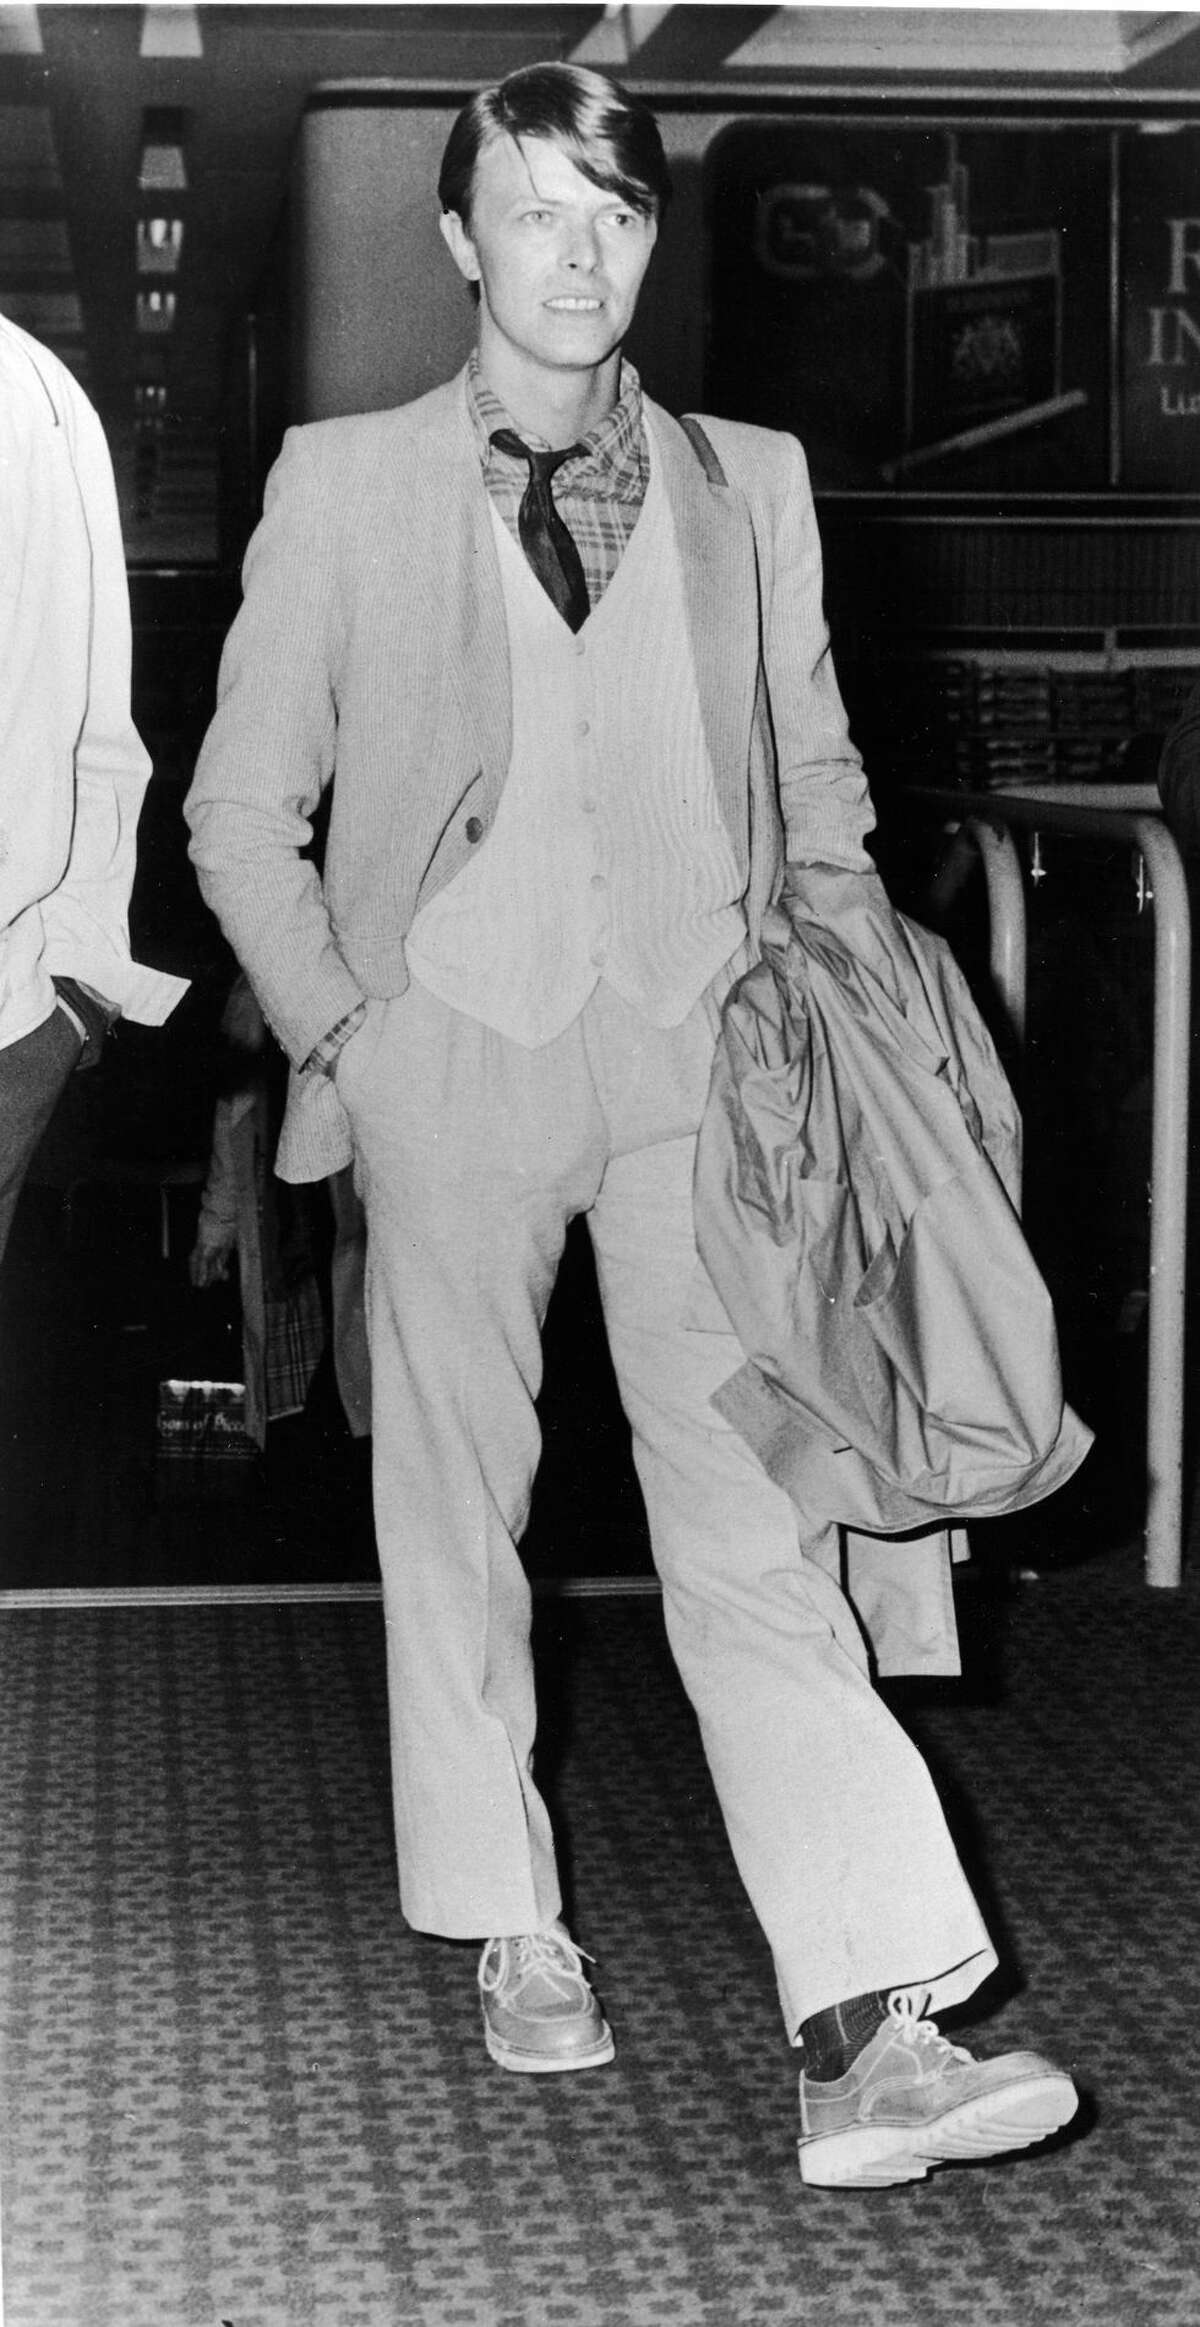 3) David Bowie at Heathrow Airport in 1978.